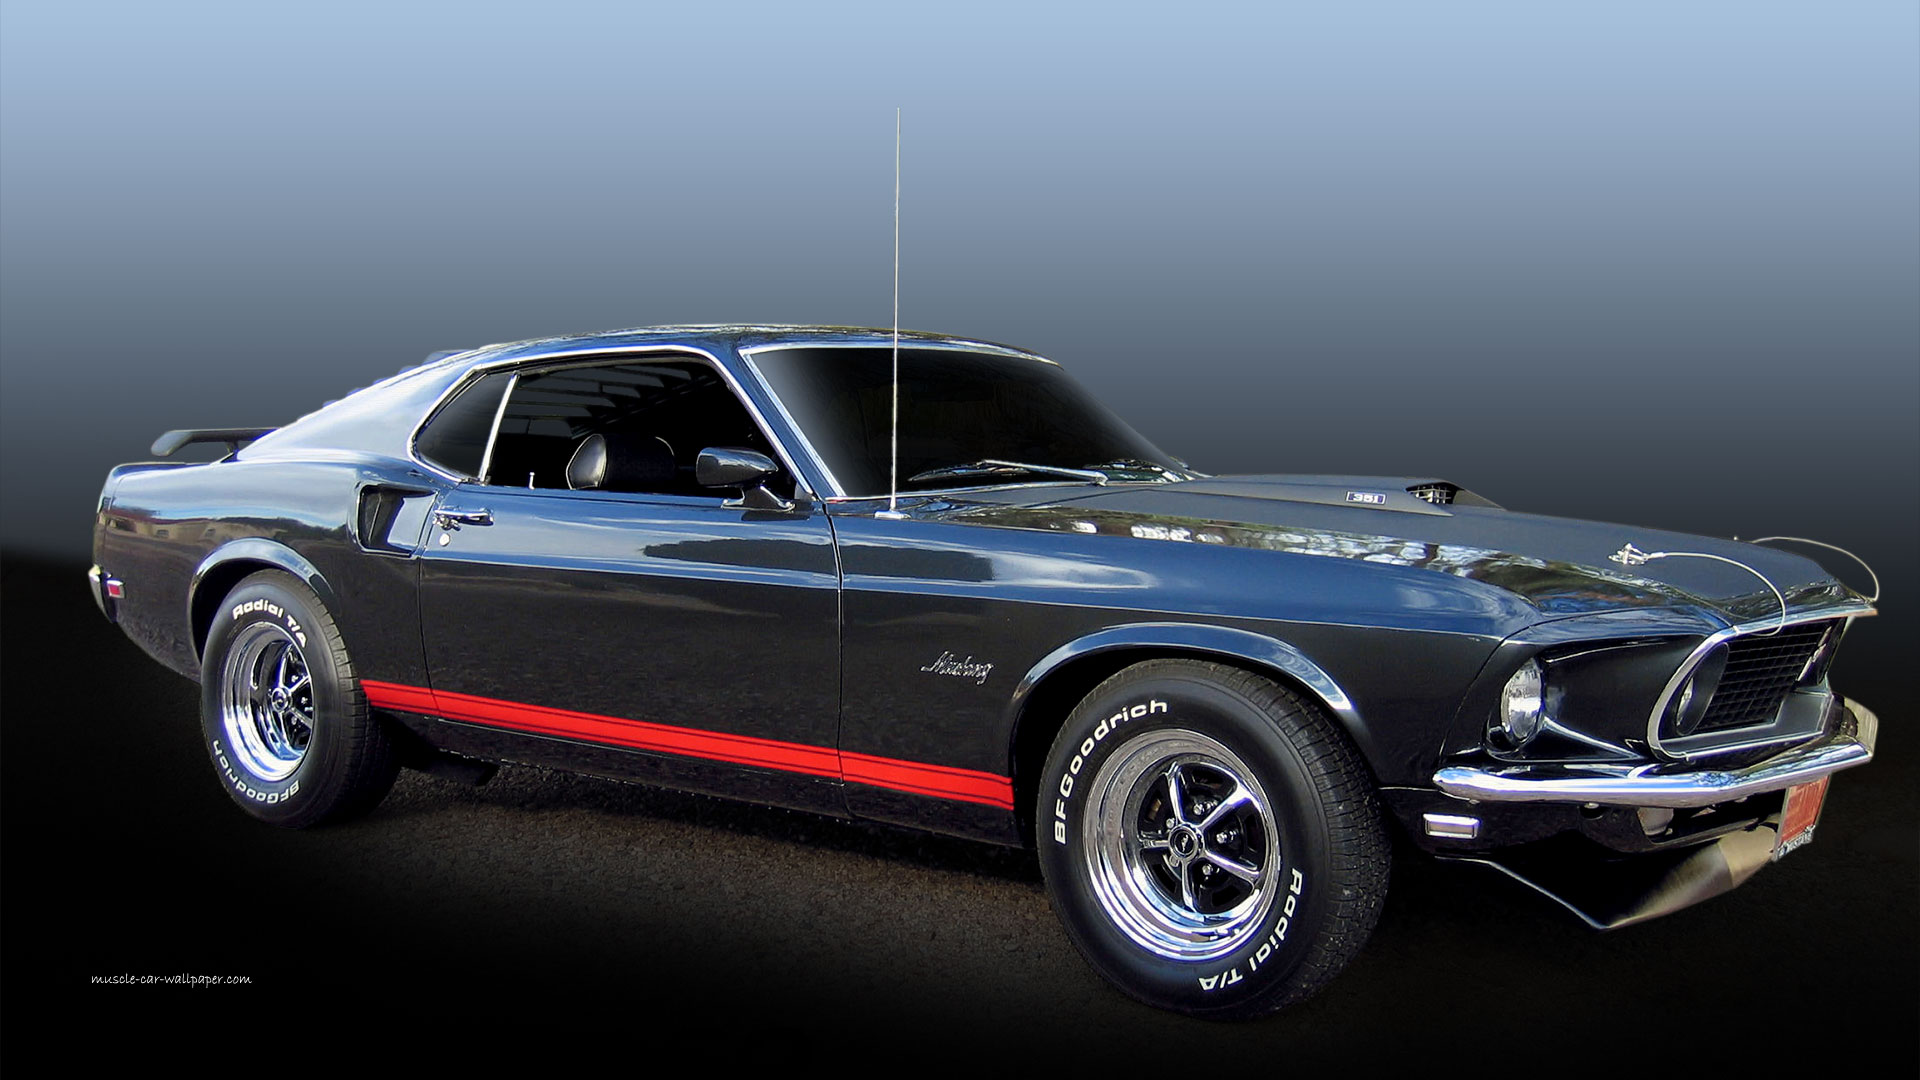 muscle car wallpapercomimagesfordMustang Pictures1969 mustang 1920x1080